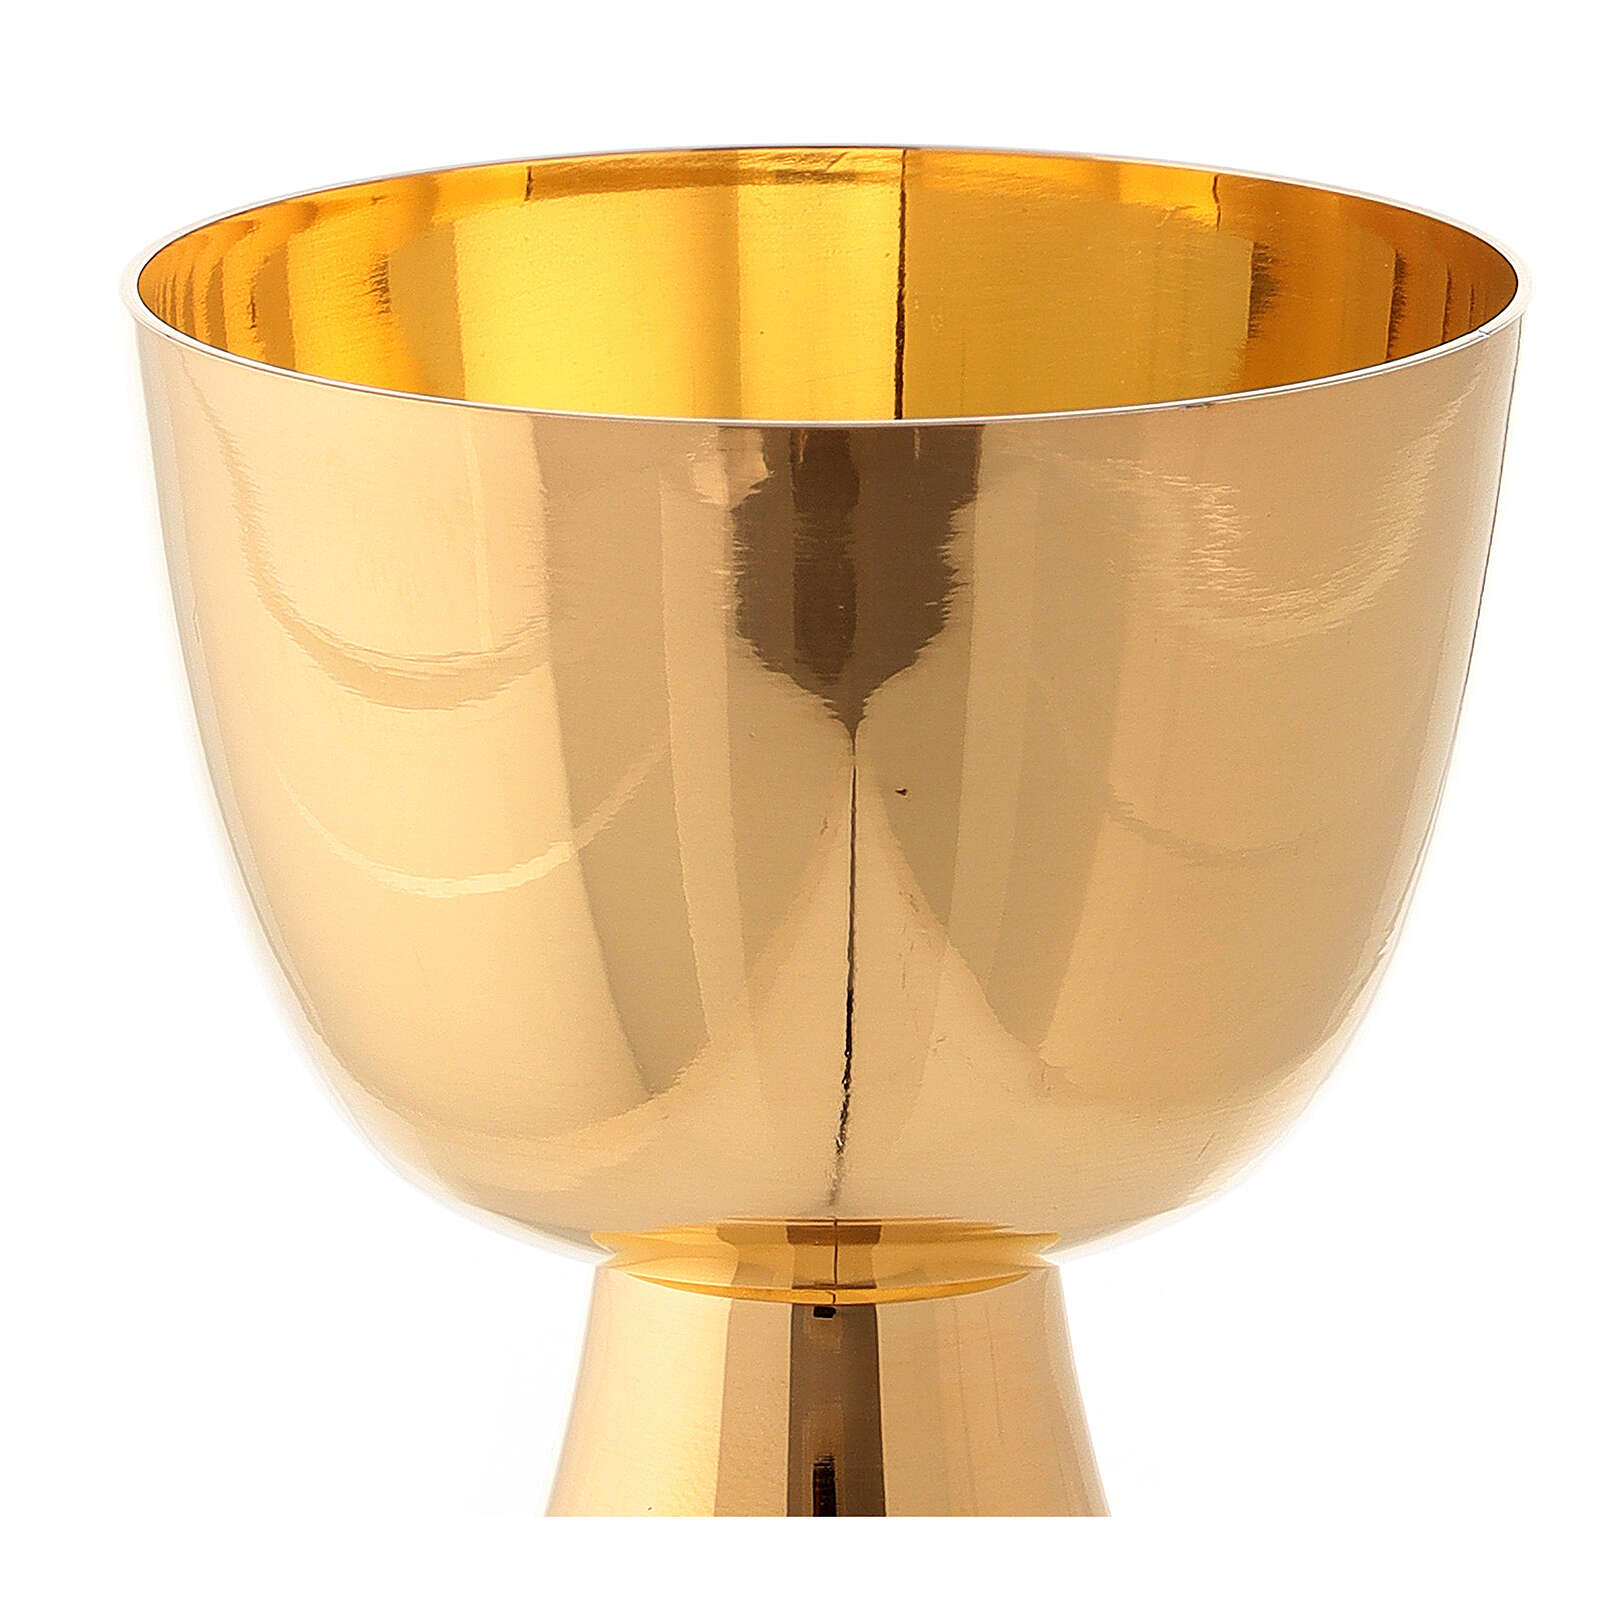 Small chalice for traveling in polished gold plated brass h 2 3/4 in 4